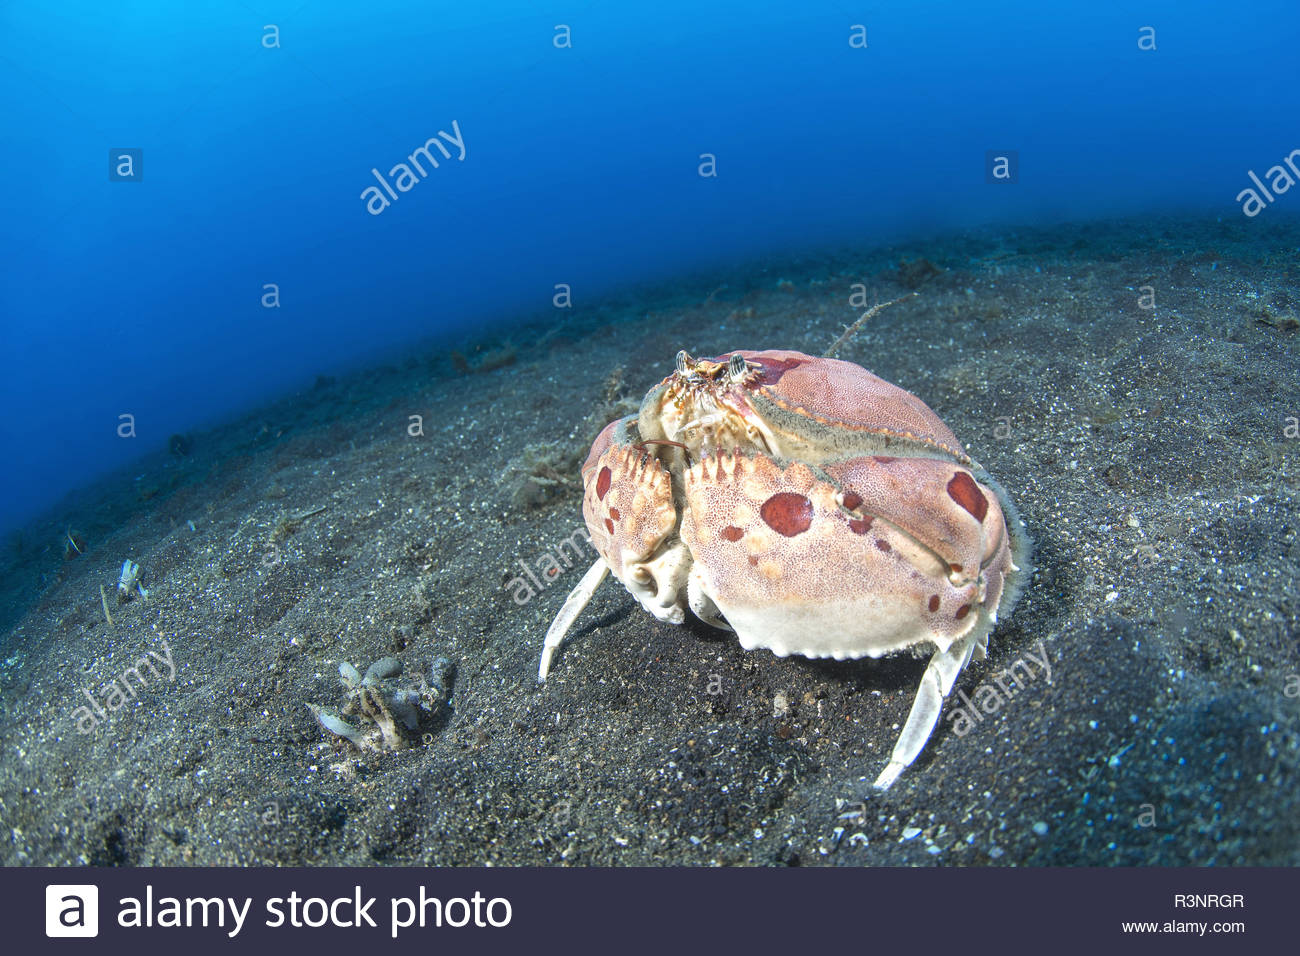 Spectacled box Crab (Calappa philargius) on the sand, Lembeh Strait, Indonesia - Stock Image